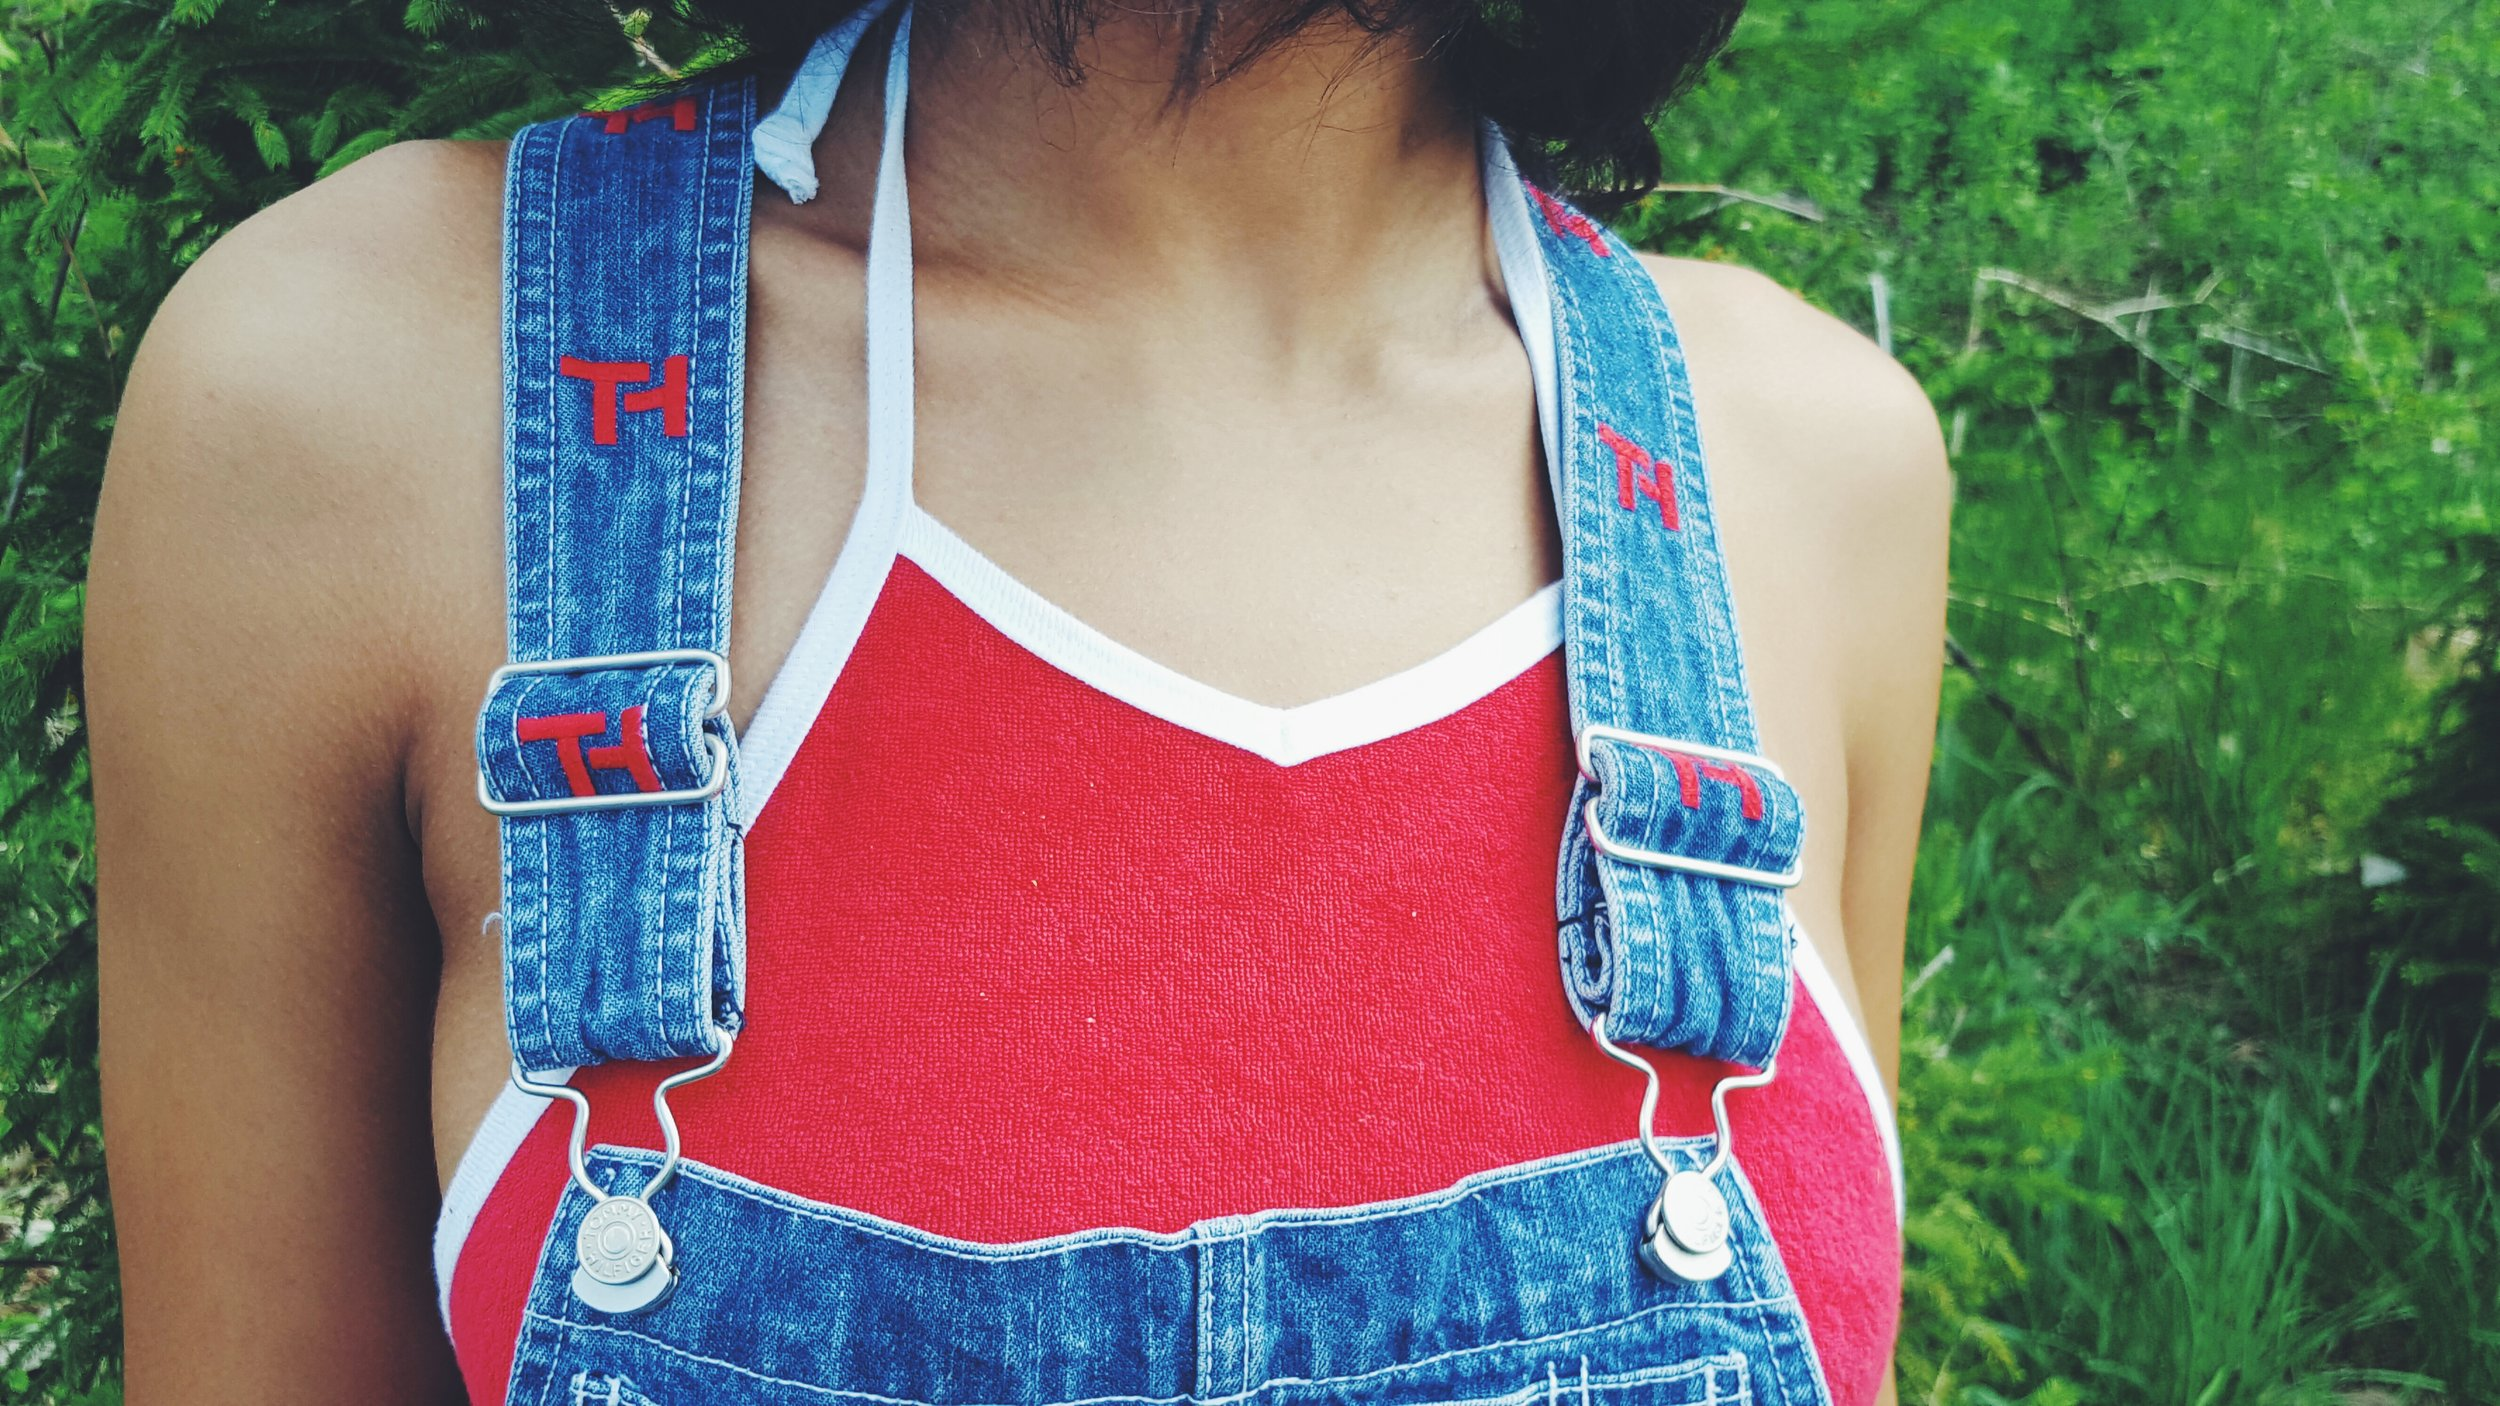 Overalls| Tommy Hilfiger  Crop Top| American Apparel